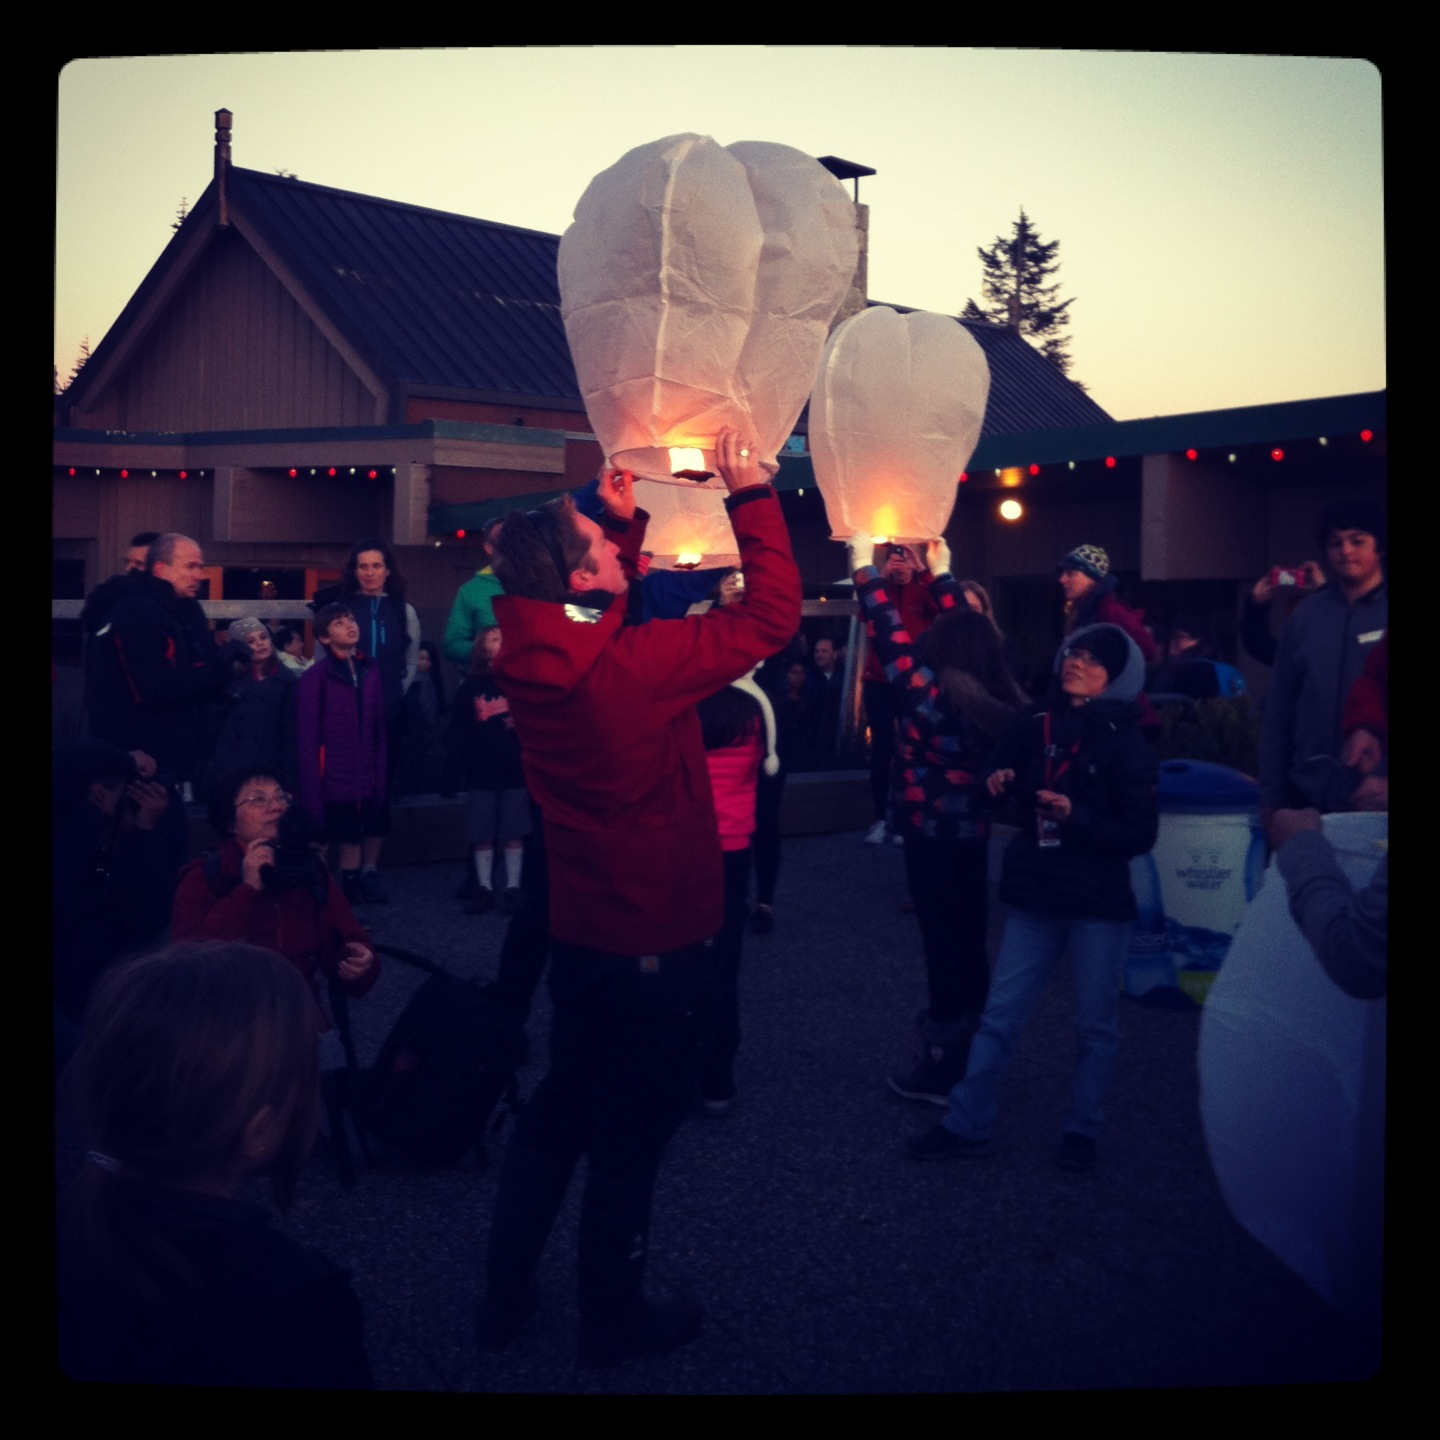 It was exciting to see everyone lite their lanterns!